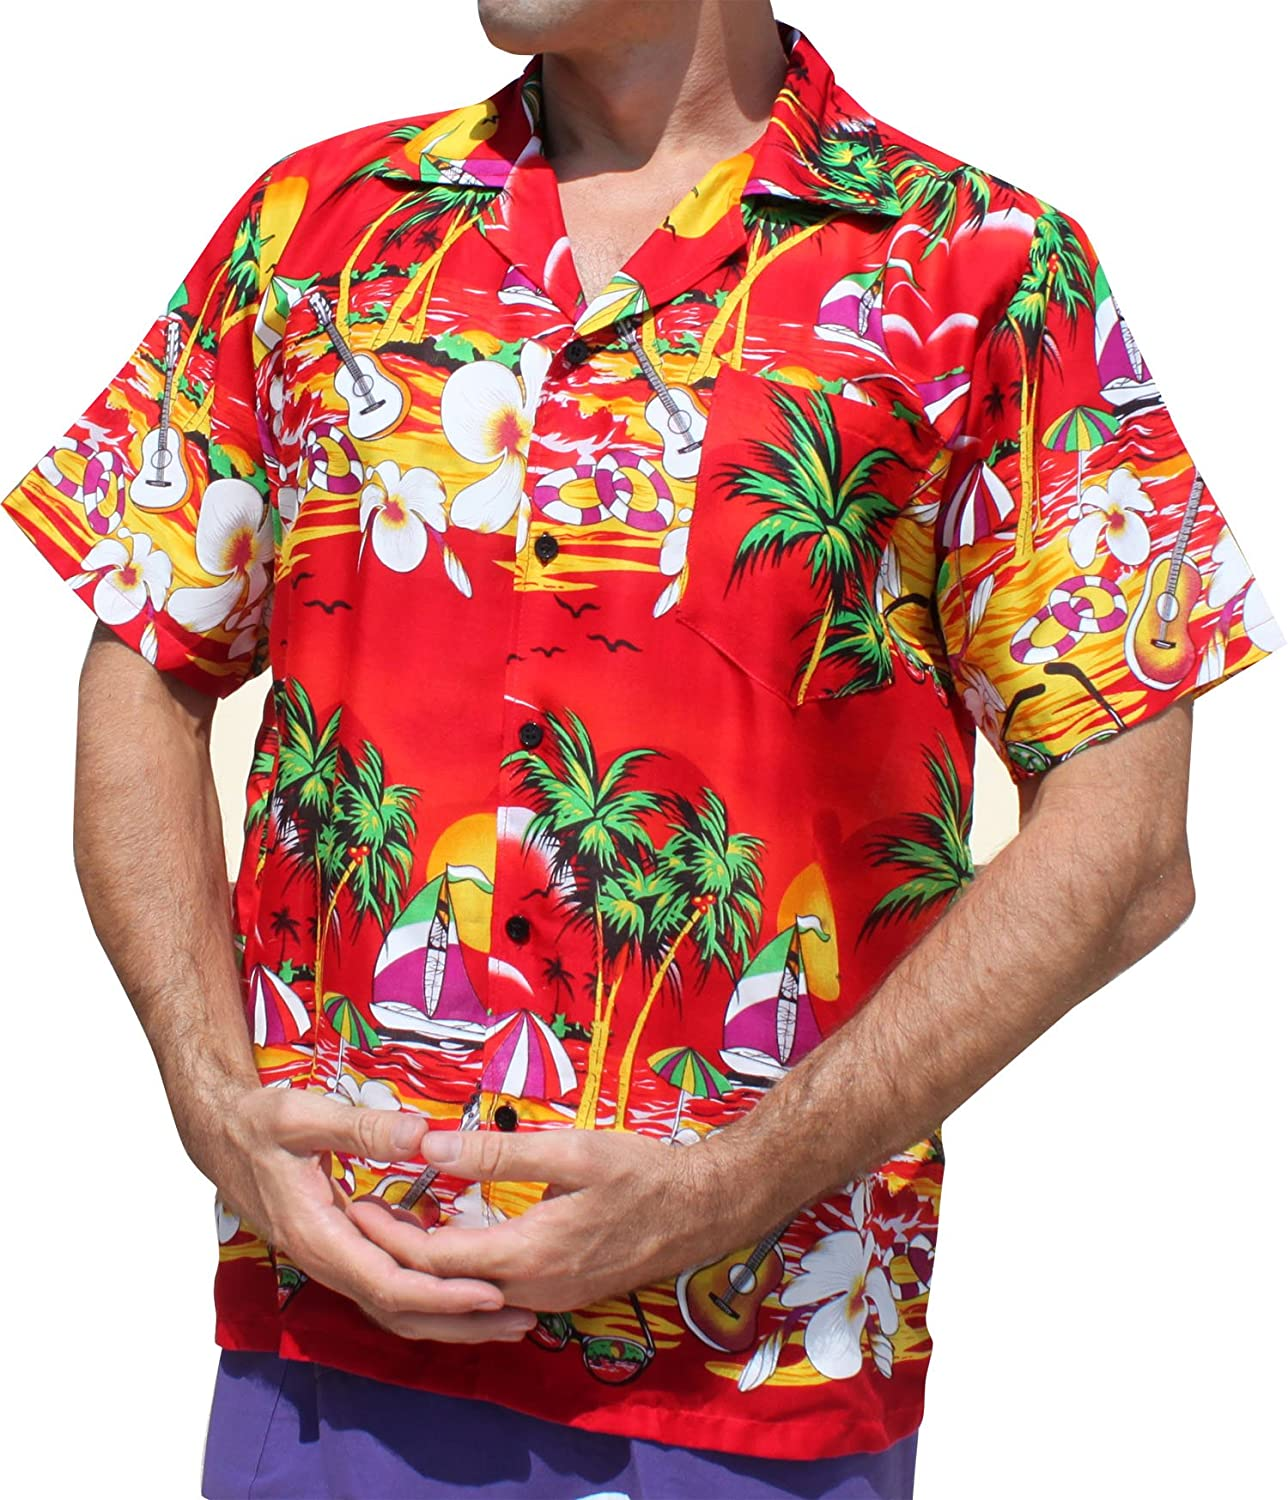 Hawaiian Shirt SeaSide Art Short Sleeve Euro Collar Buttons variant35160AMZ